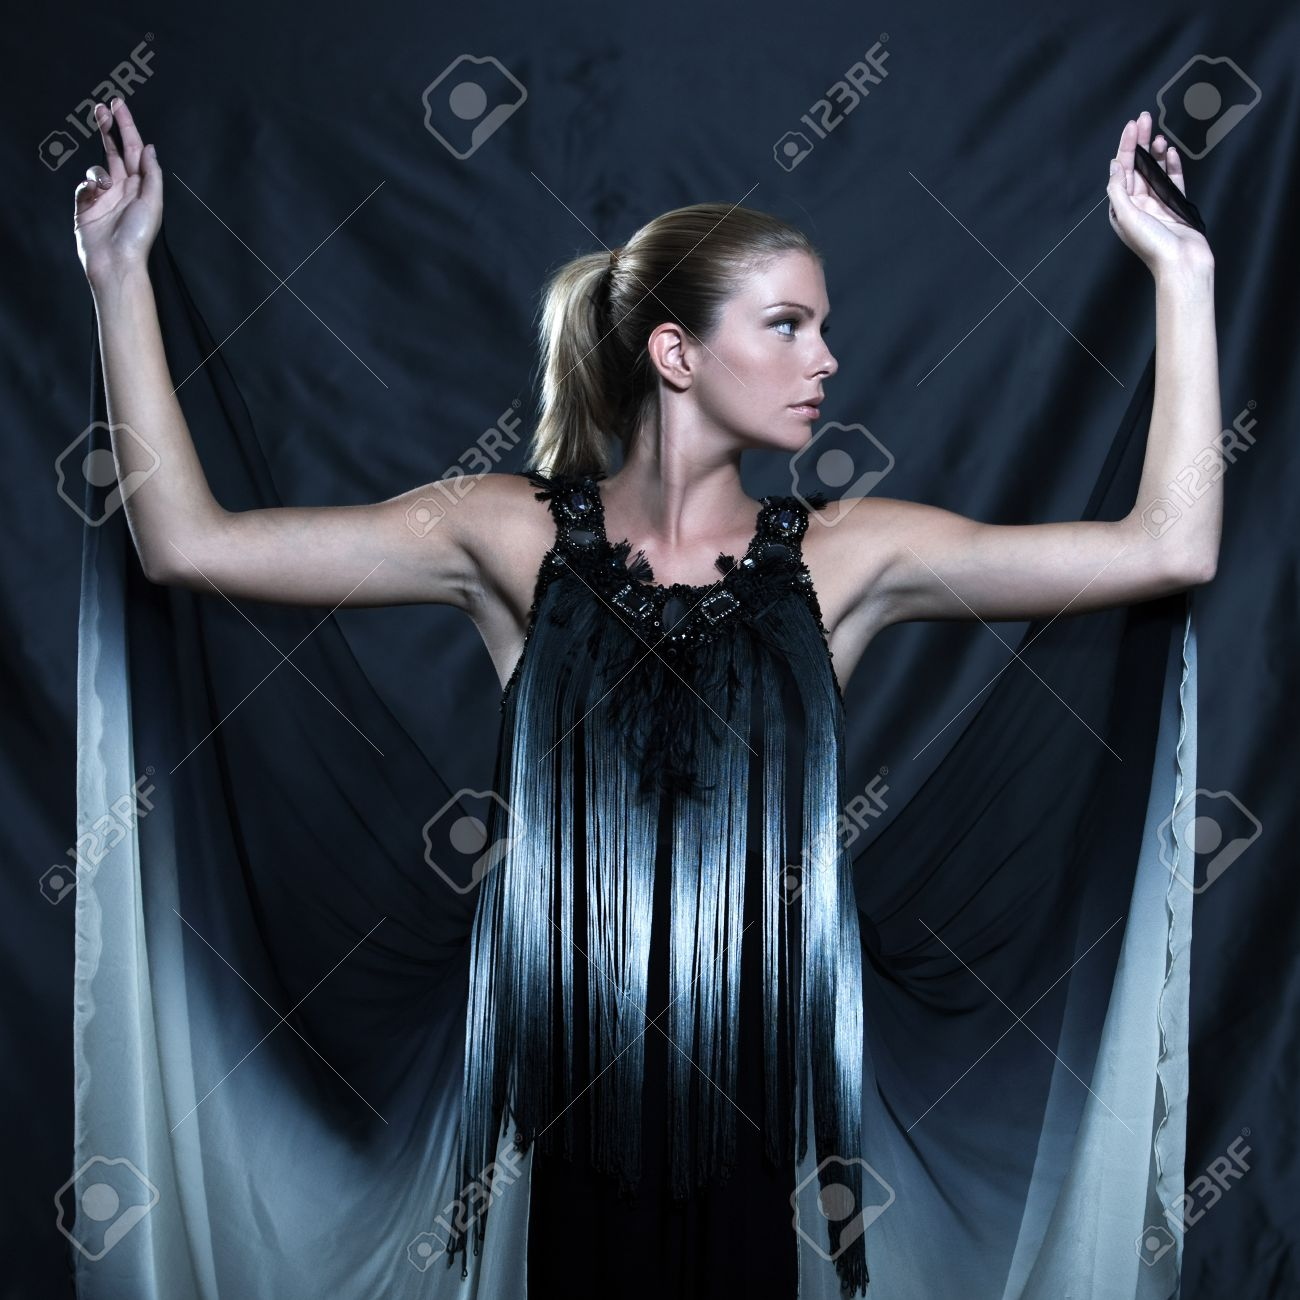 fashion pictures of a beautiful woman wearing silk fringe black and white dress chinese style doing martial arts posture Stock Photo - 9823626